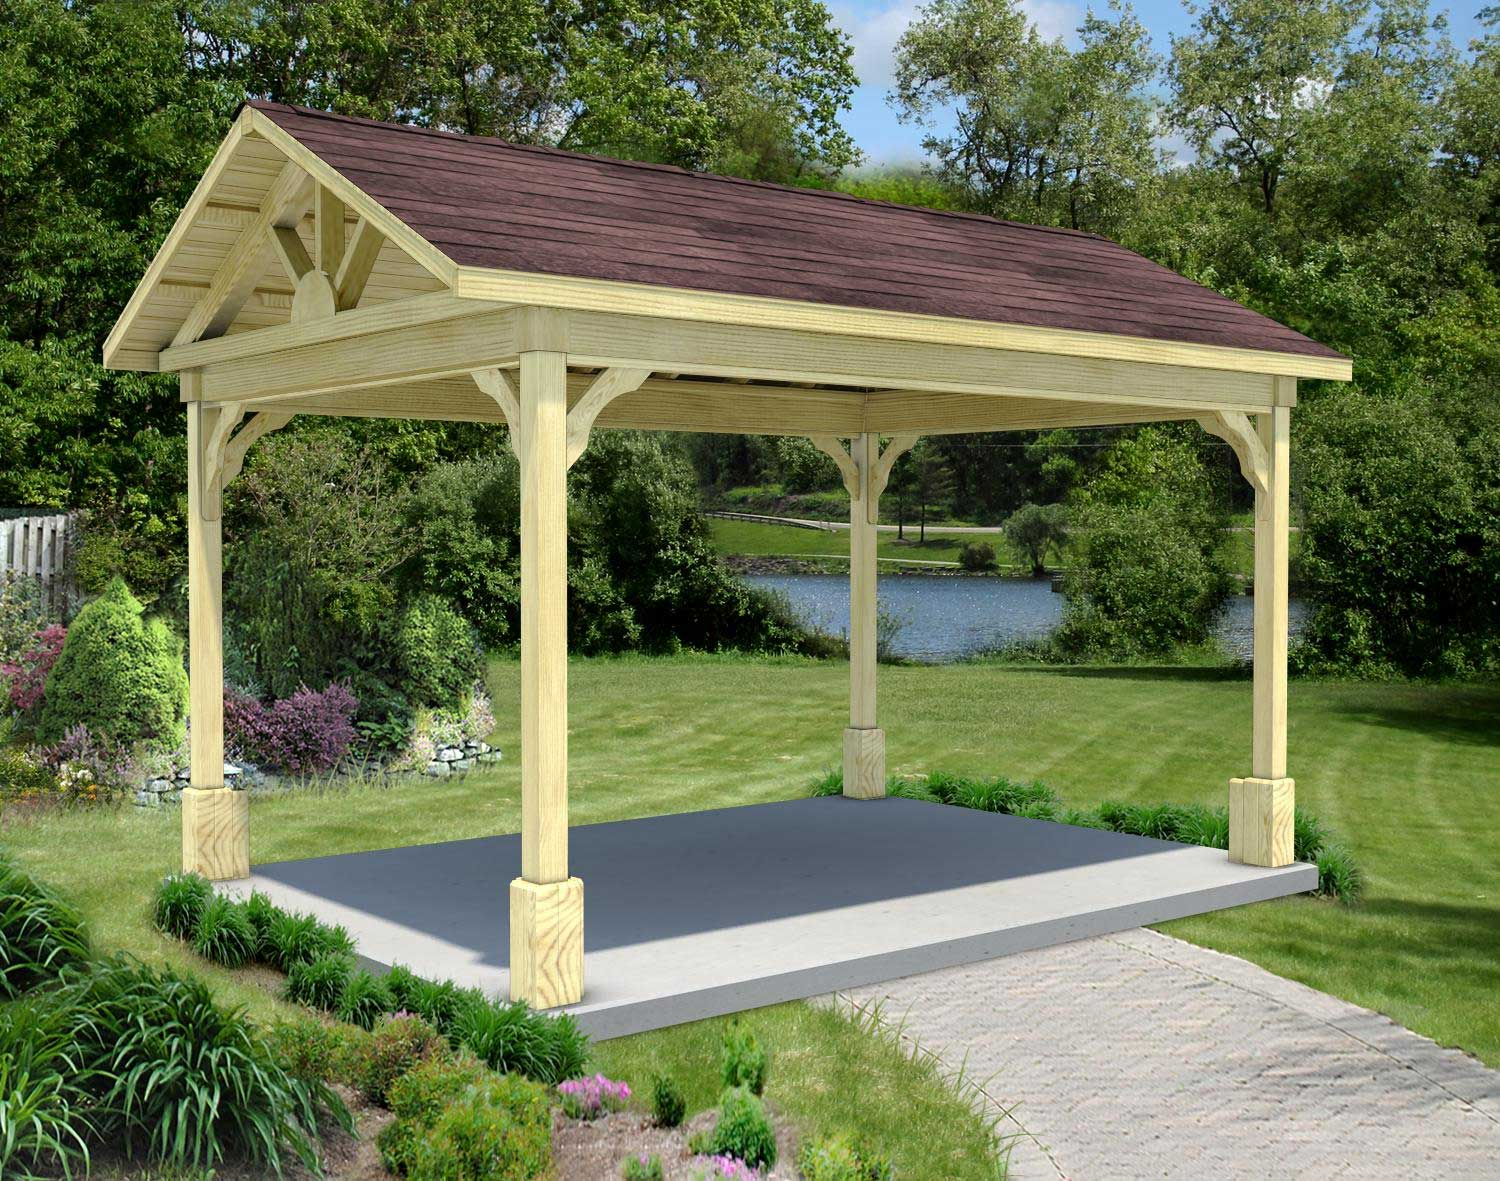 Treated Pine Gable Roof Open Rectangle Gazebos With 16